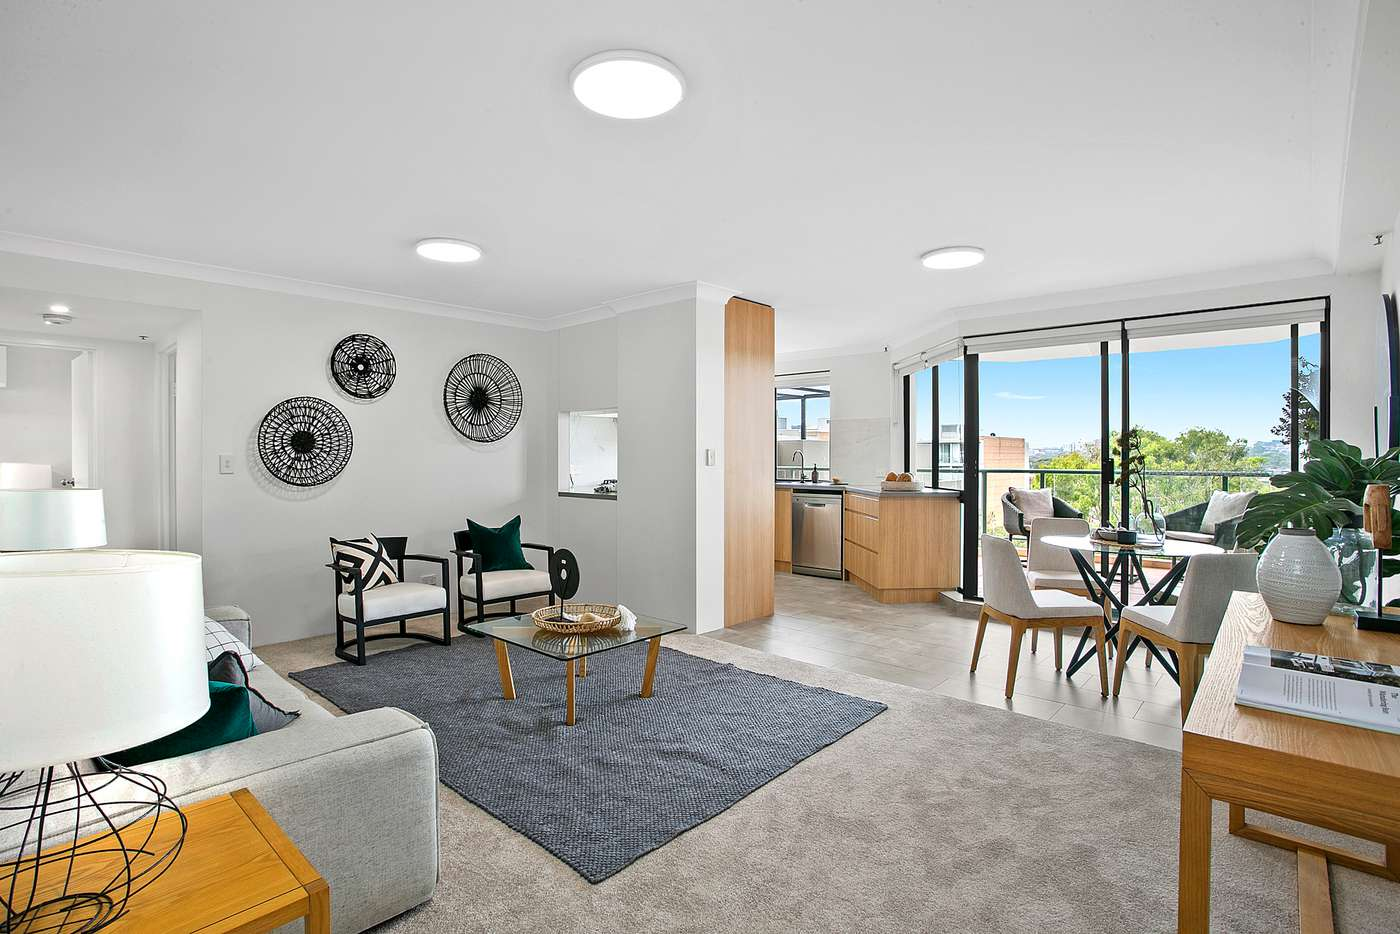 Main view of Homely apartment listing, 19/172-178 Maroubra Road, Maroubra NSW 2035